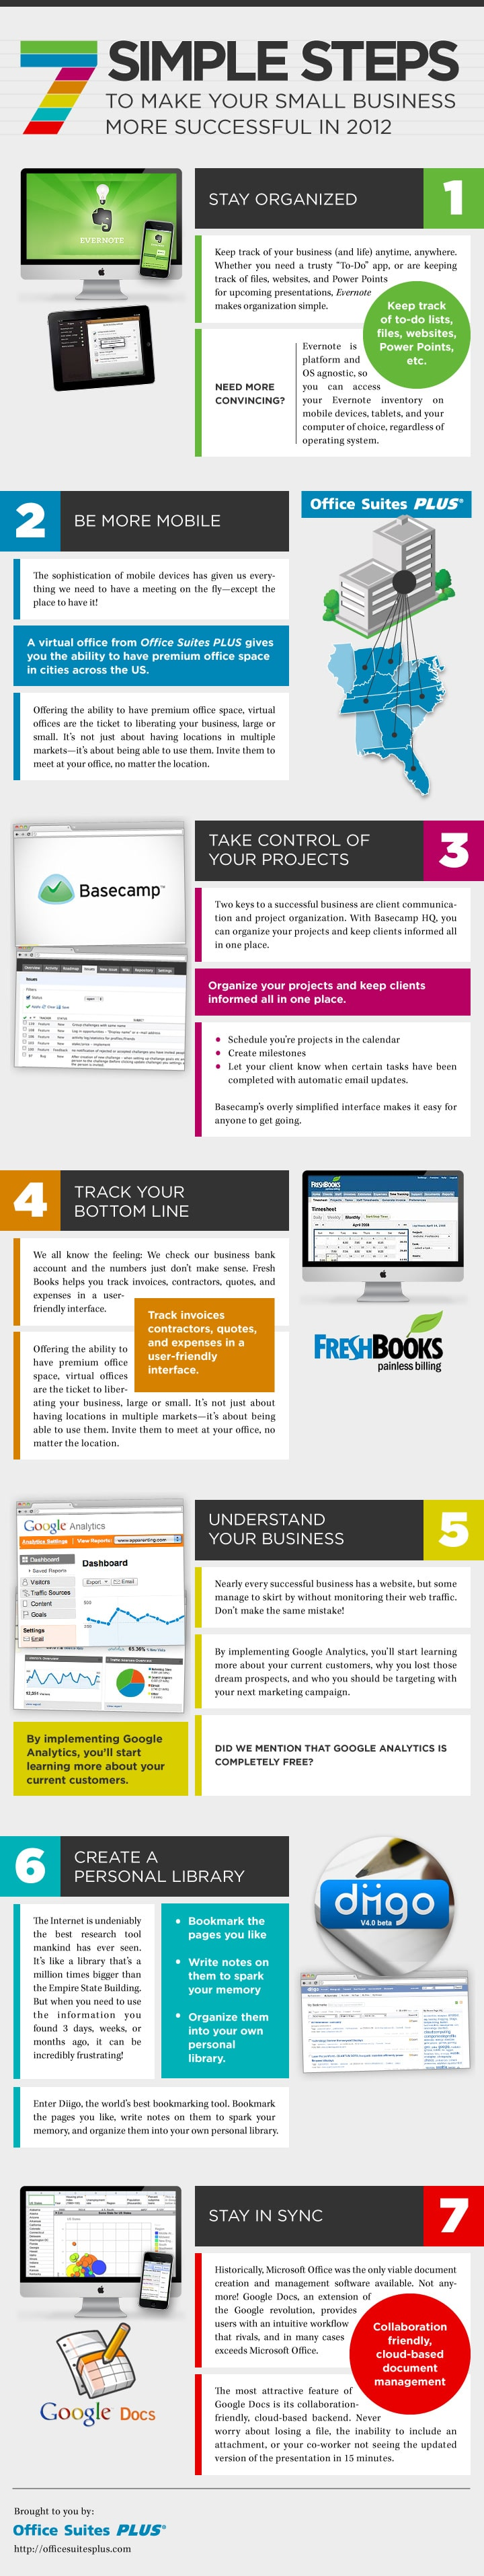 7 Steps To Make Your Venture More Successful In 2012 [Infographic]